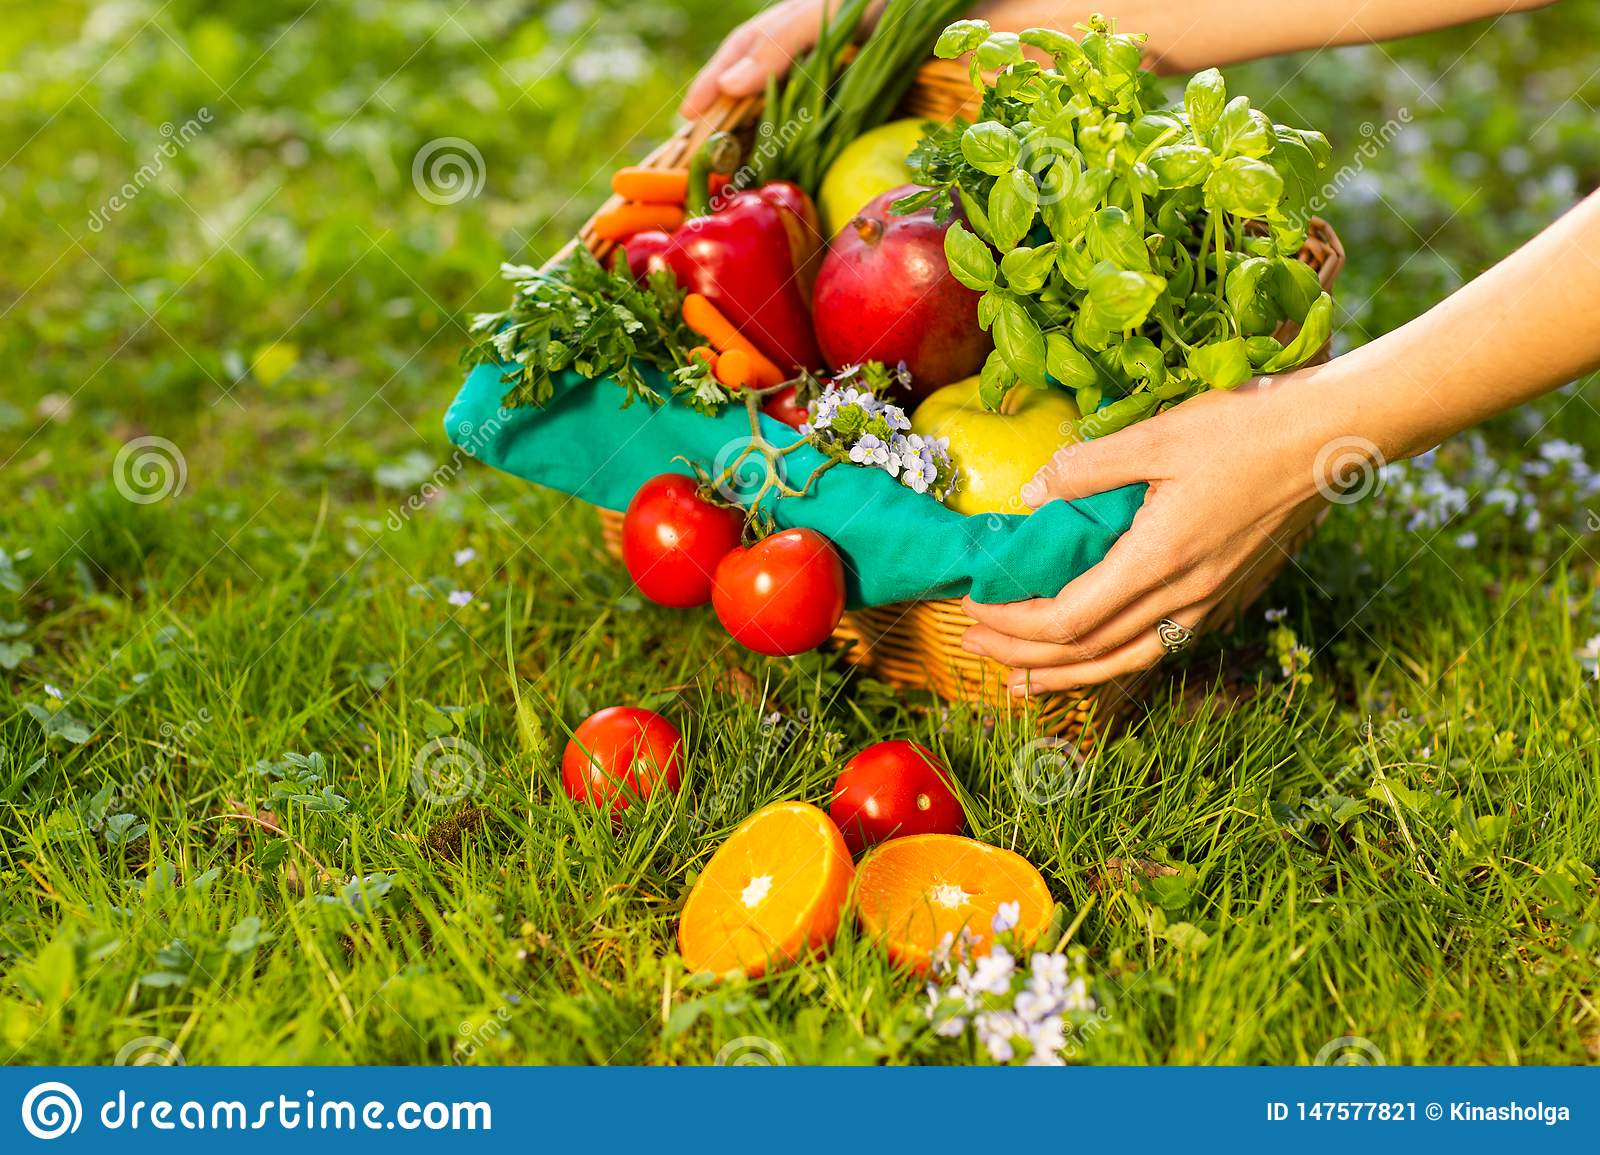 Female hands holding wicker basket with vegetables and fruits, close up